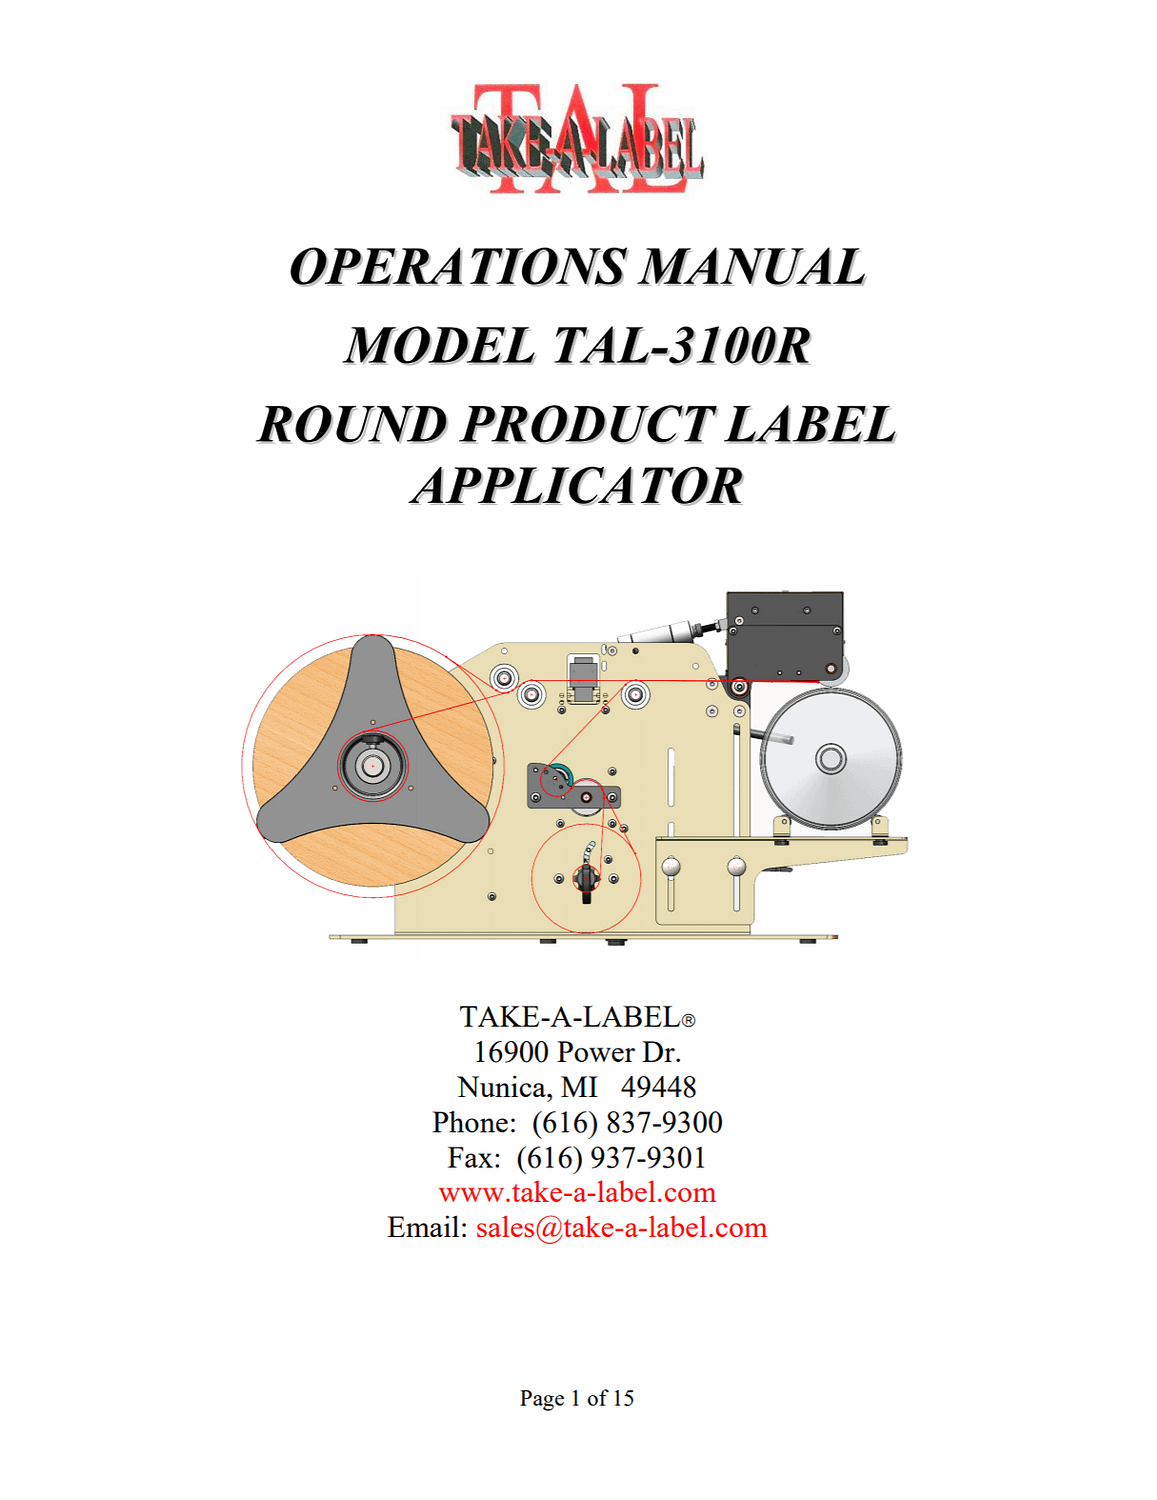 Take-A-Label TAL-3100R Semi-Auto Round Product Label Applicator Product Manual